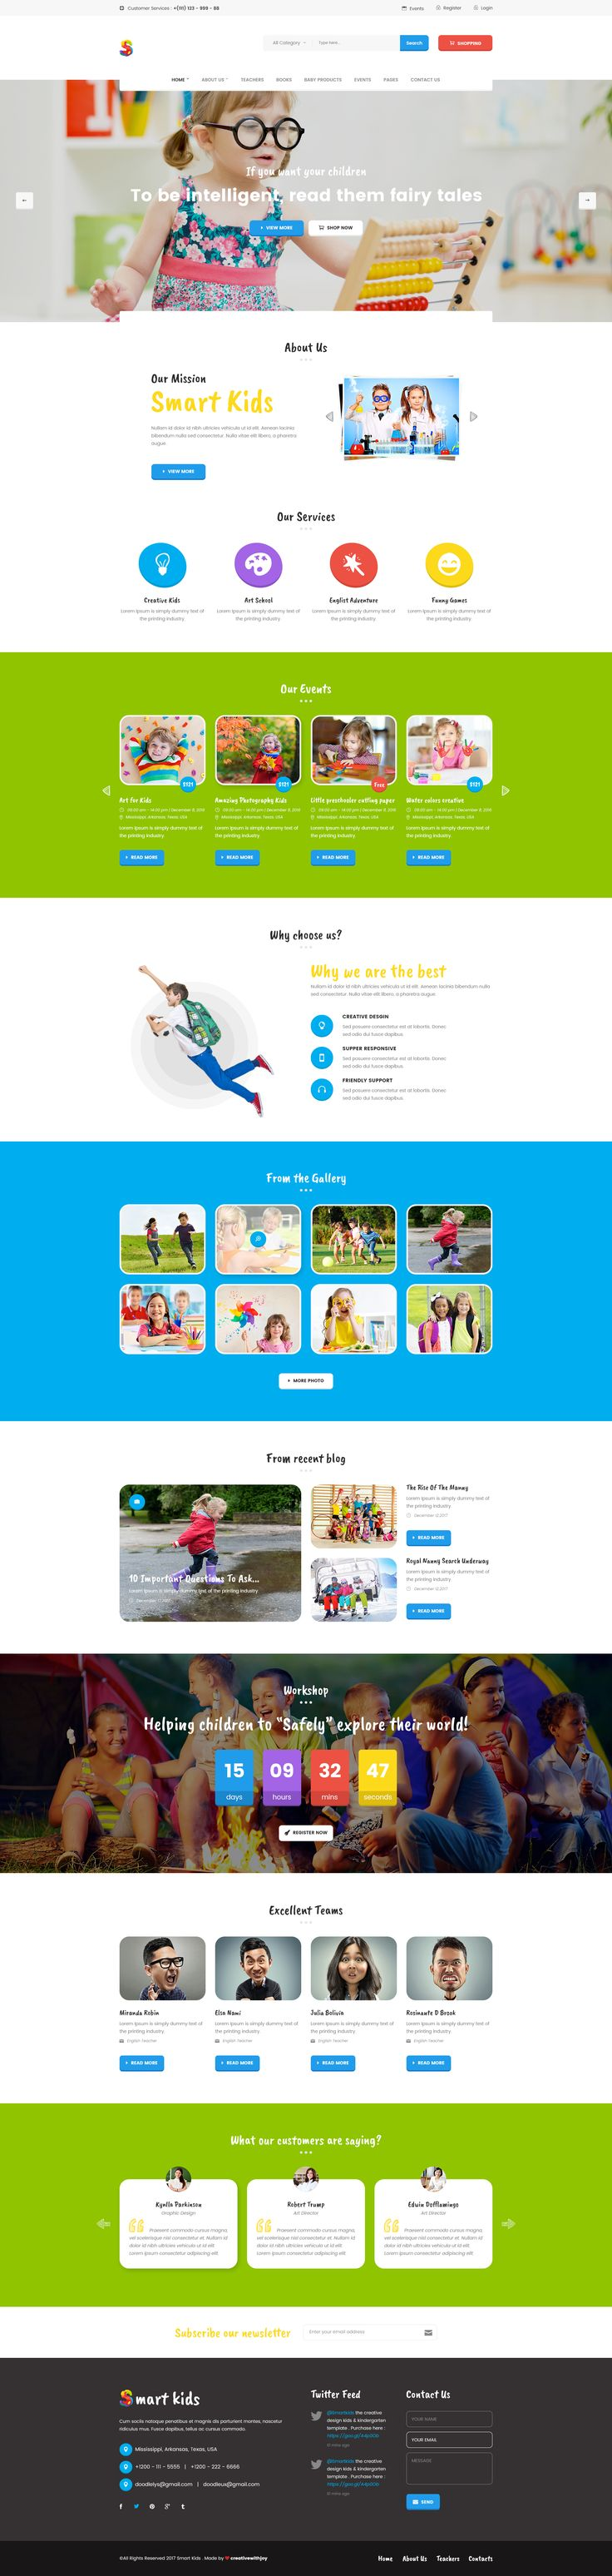 Smart Kids - Multipopurse Creative Kids Kindergarten PSD Template #course #courses #creative school • Download ➝ https://themeforest.net/item/smart-kids-multipopurse-creative-kids-kindergarten-psd-template/19254329?ref=pxcr